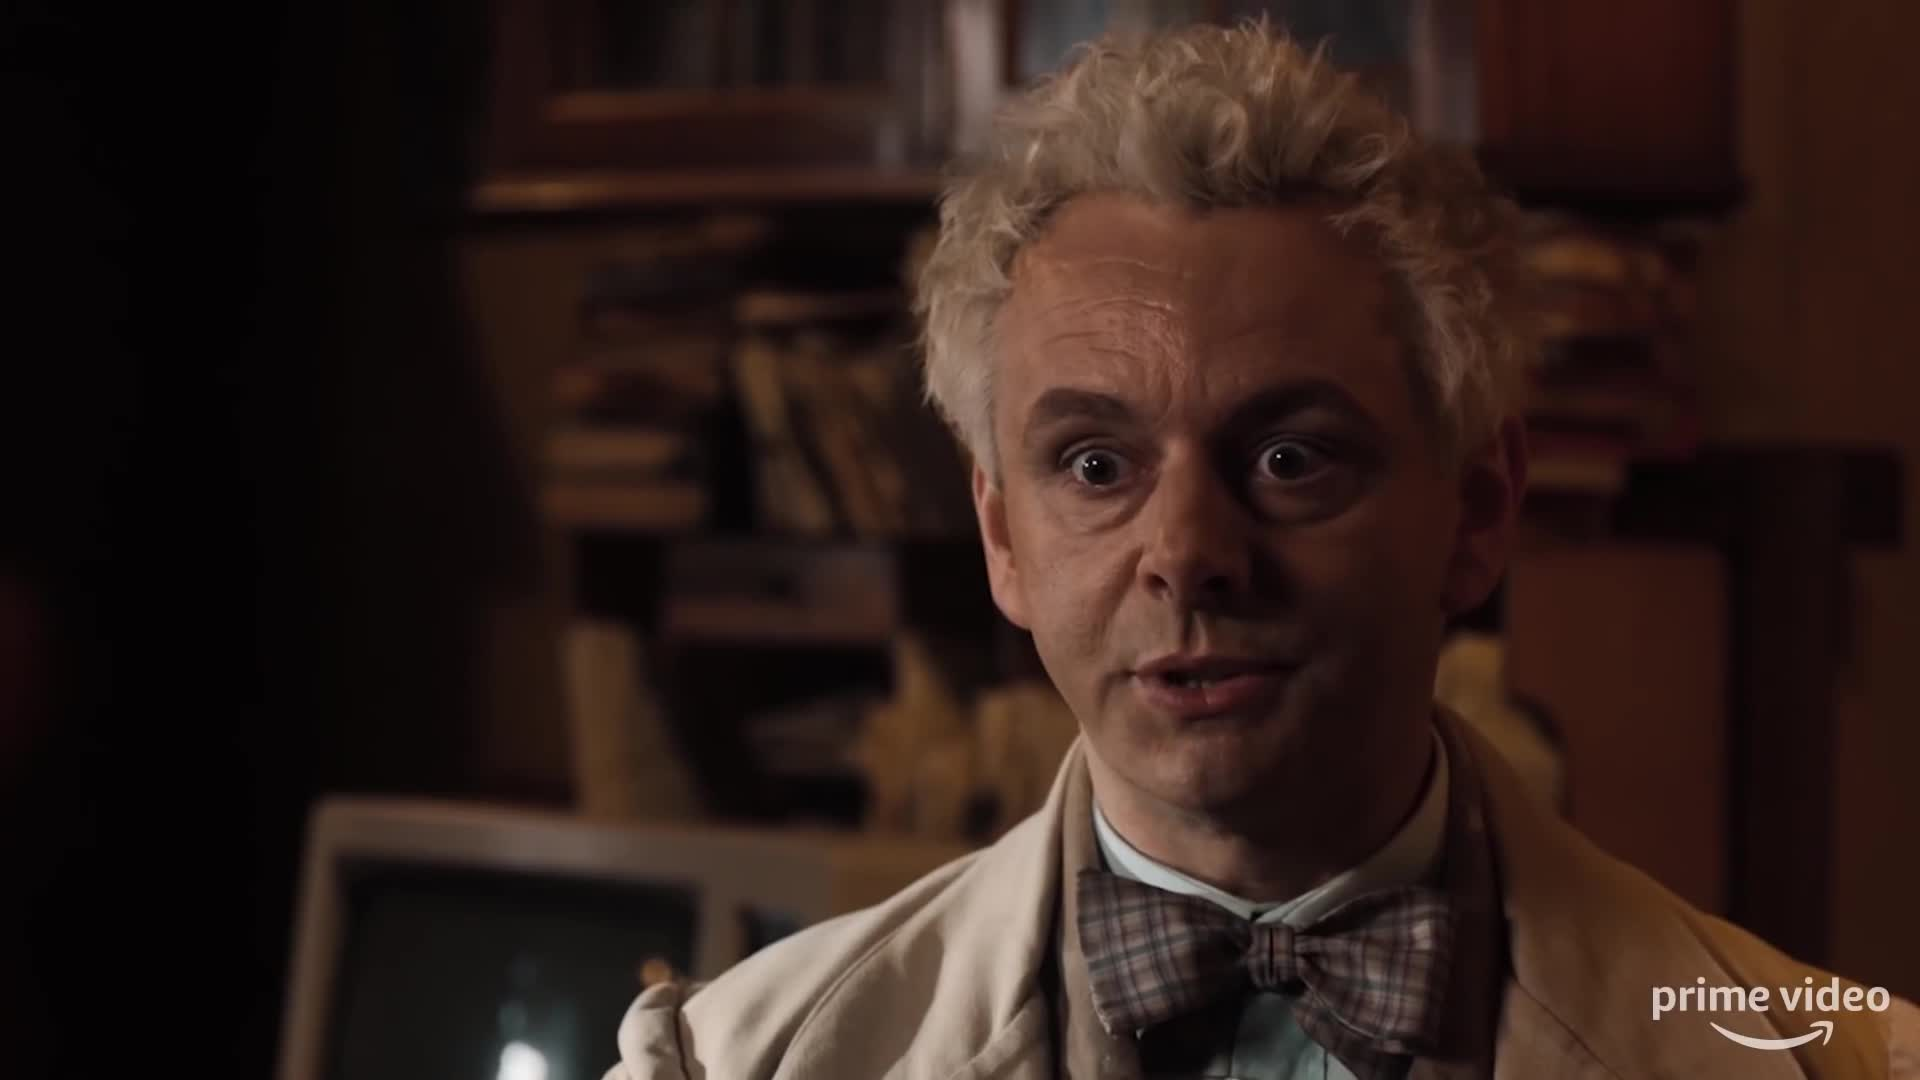 Trailer, Amazon, Serie, Amazon Prime, Amazon Prime Video, Prime Video, Good Omens, Terry Pratchett